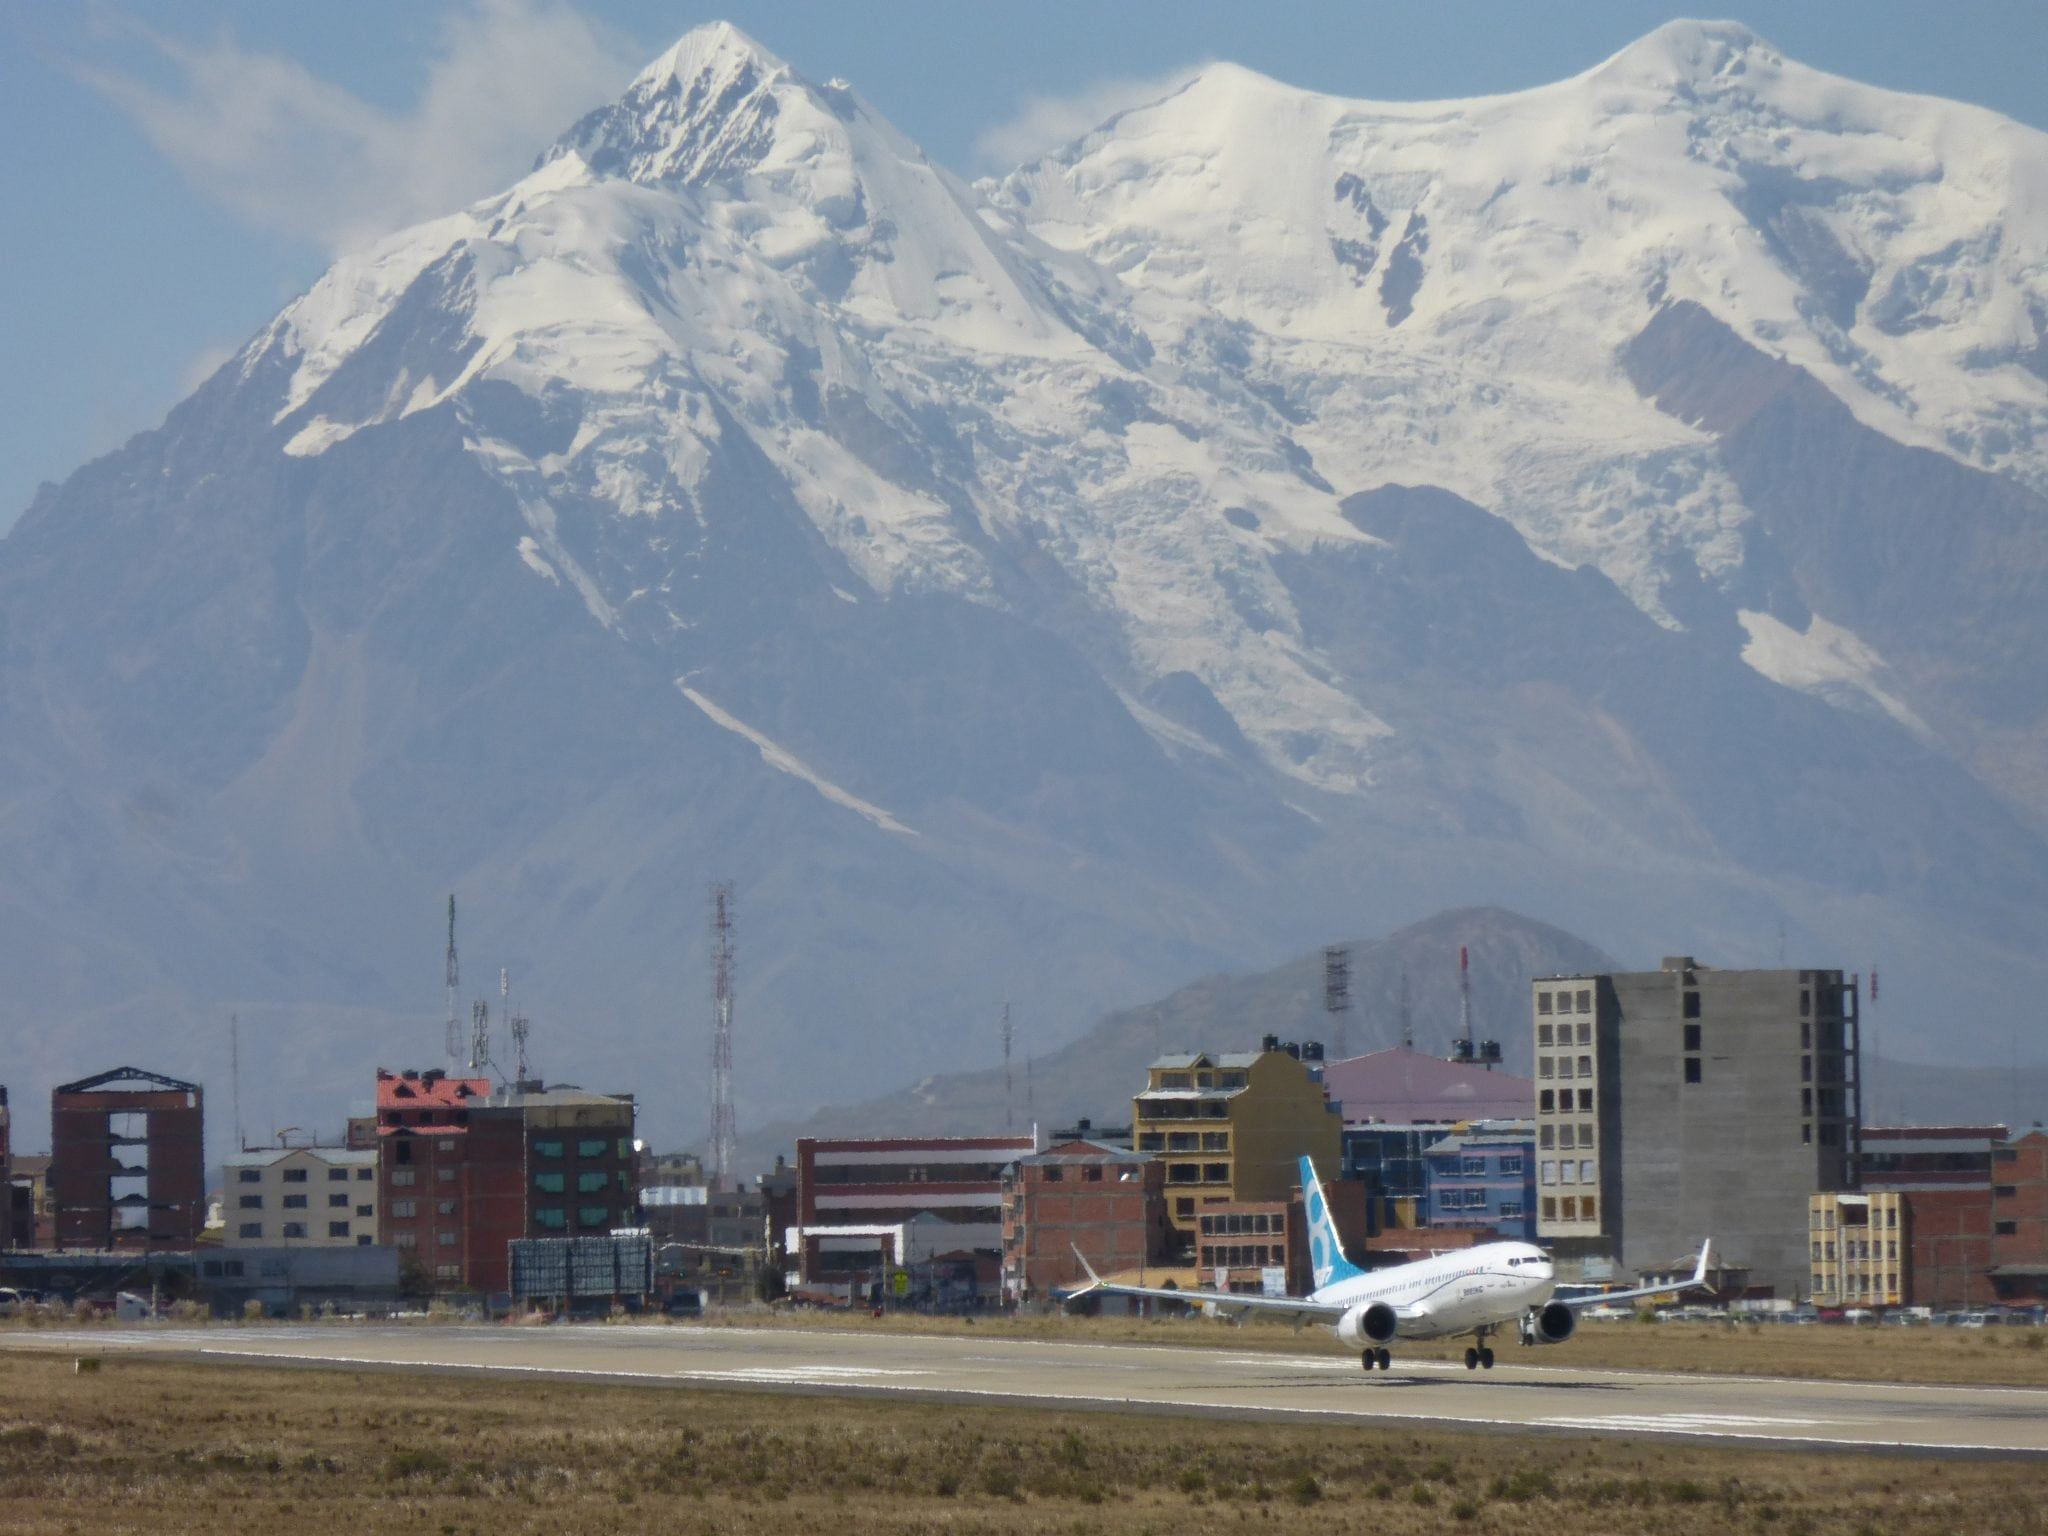 737 MAX 8 completing high altitude flight testing in La Paz, Bolivia